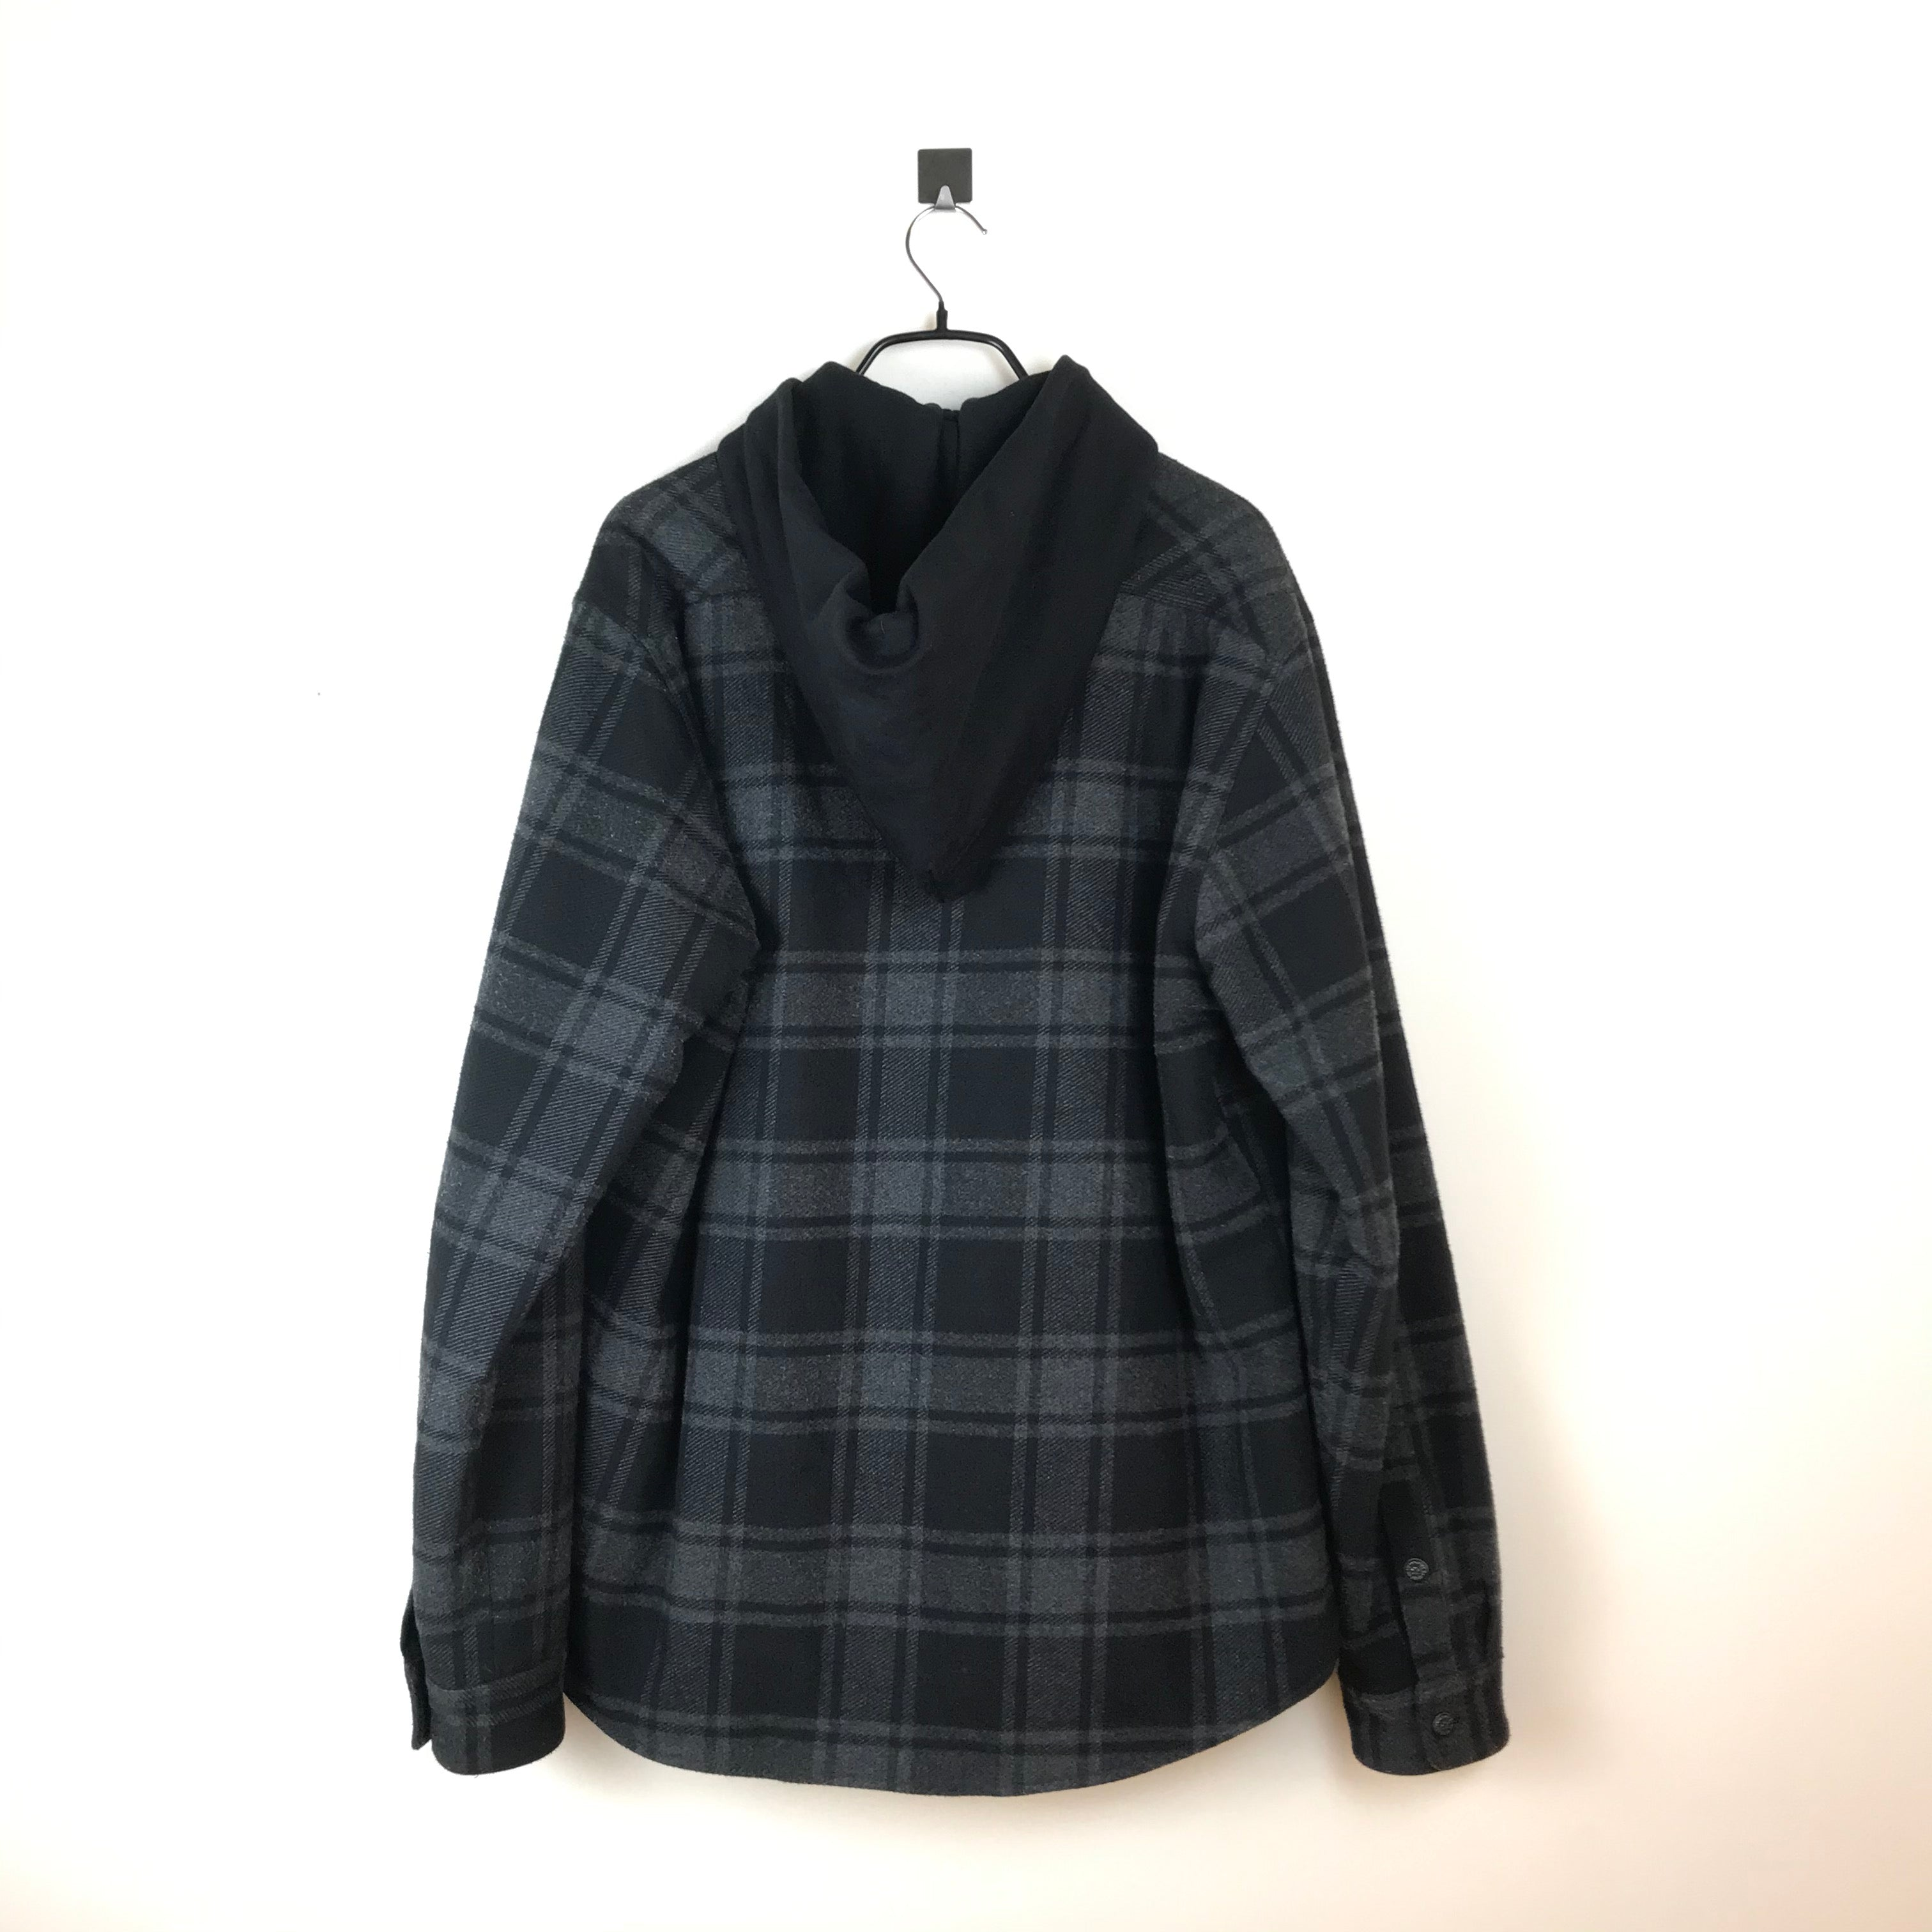 Off-White Hooded Checked Flannel Jacket